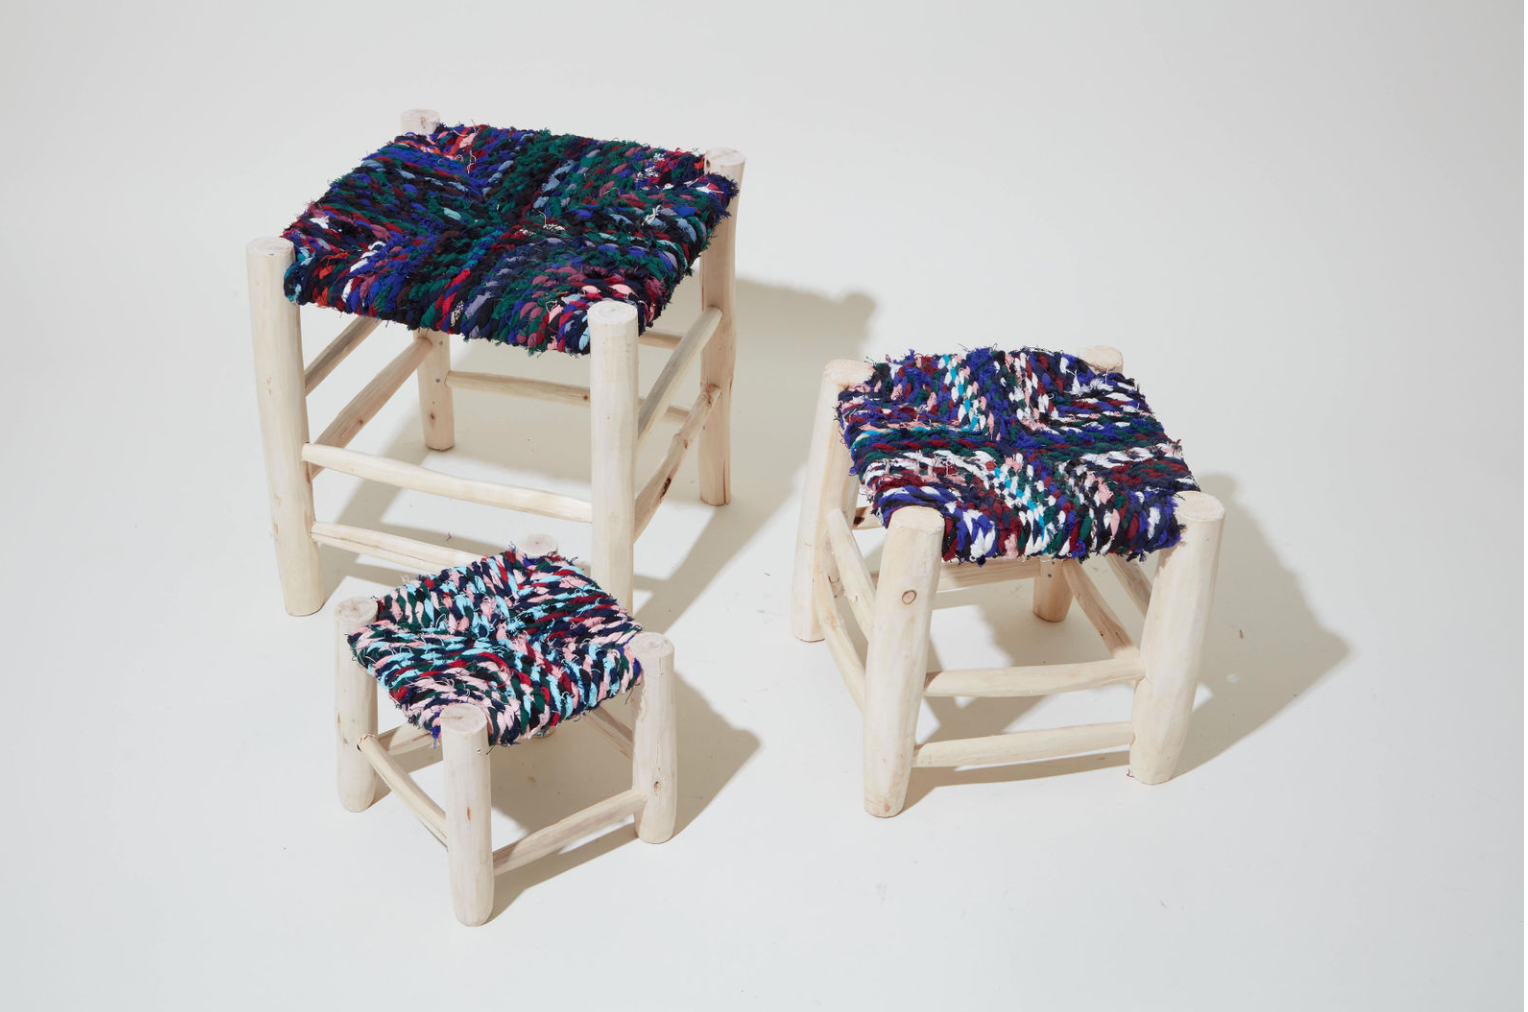 Nesting Colorful Stools - 3